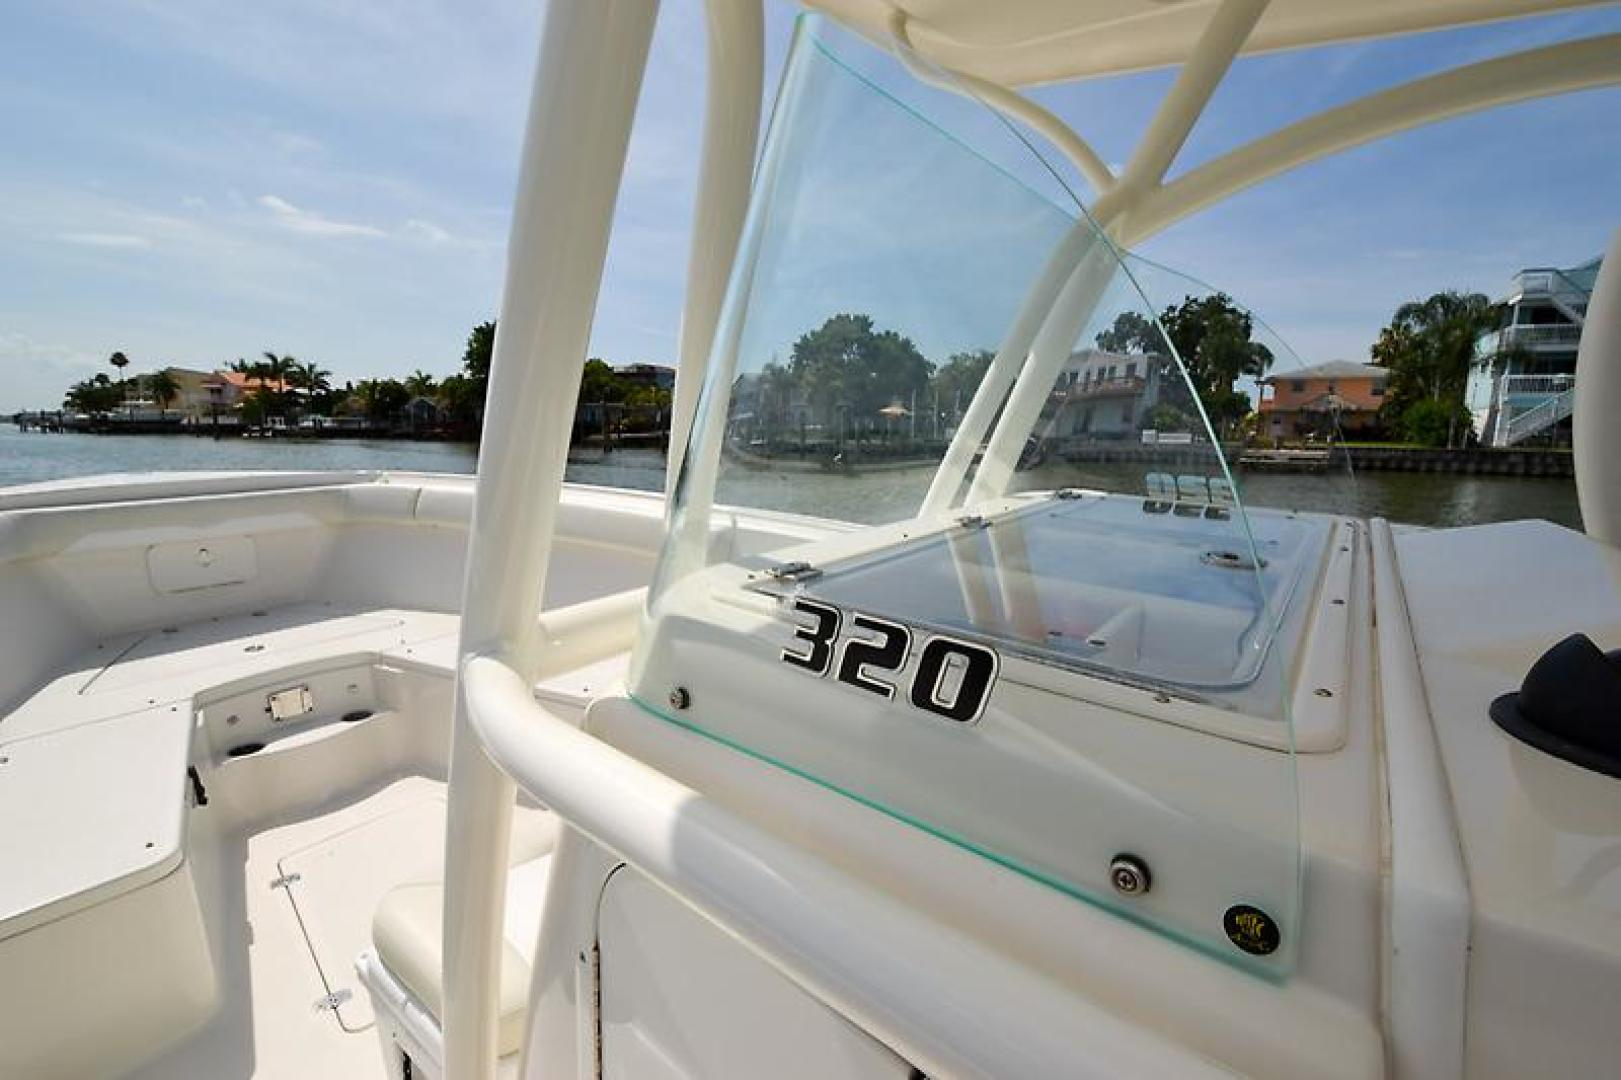 2014 Sailfish 320 cc-53.jpg